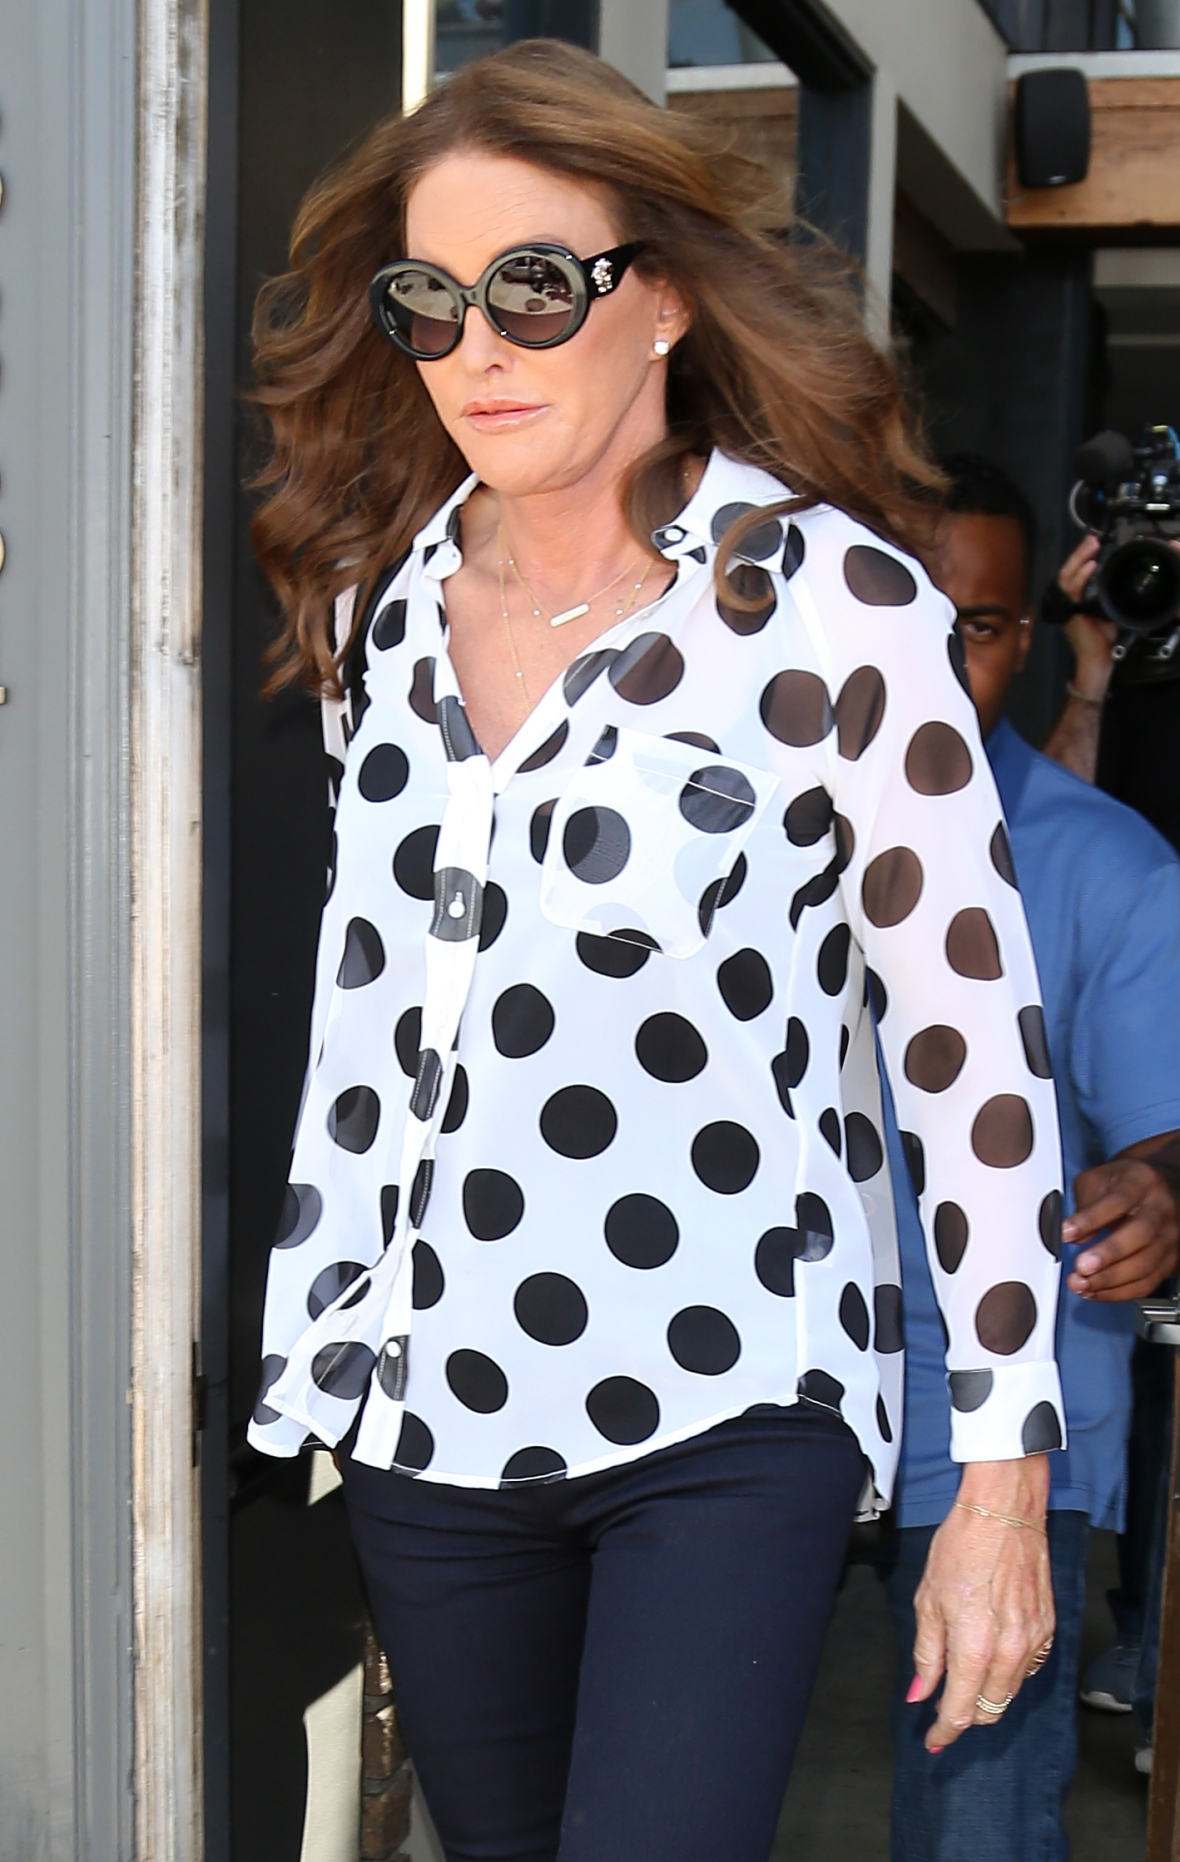 caitlyn-jenner-i-am-cait-reveal-sexuality